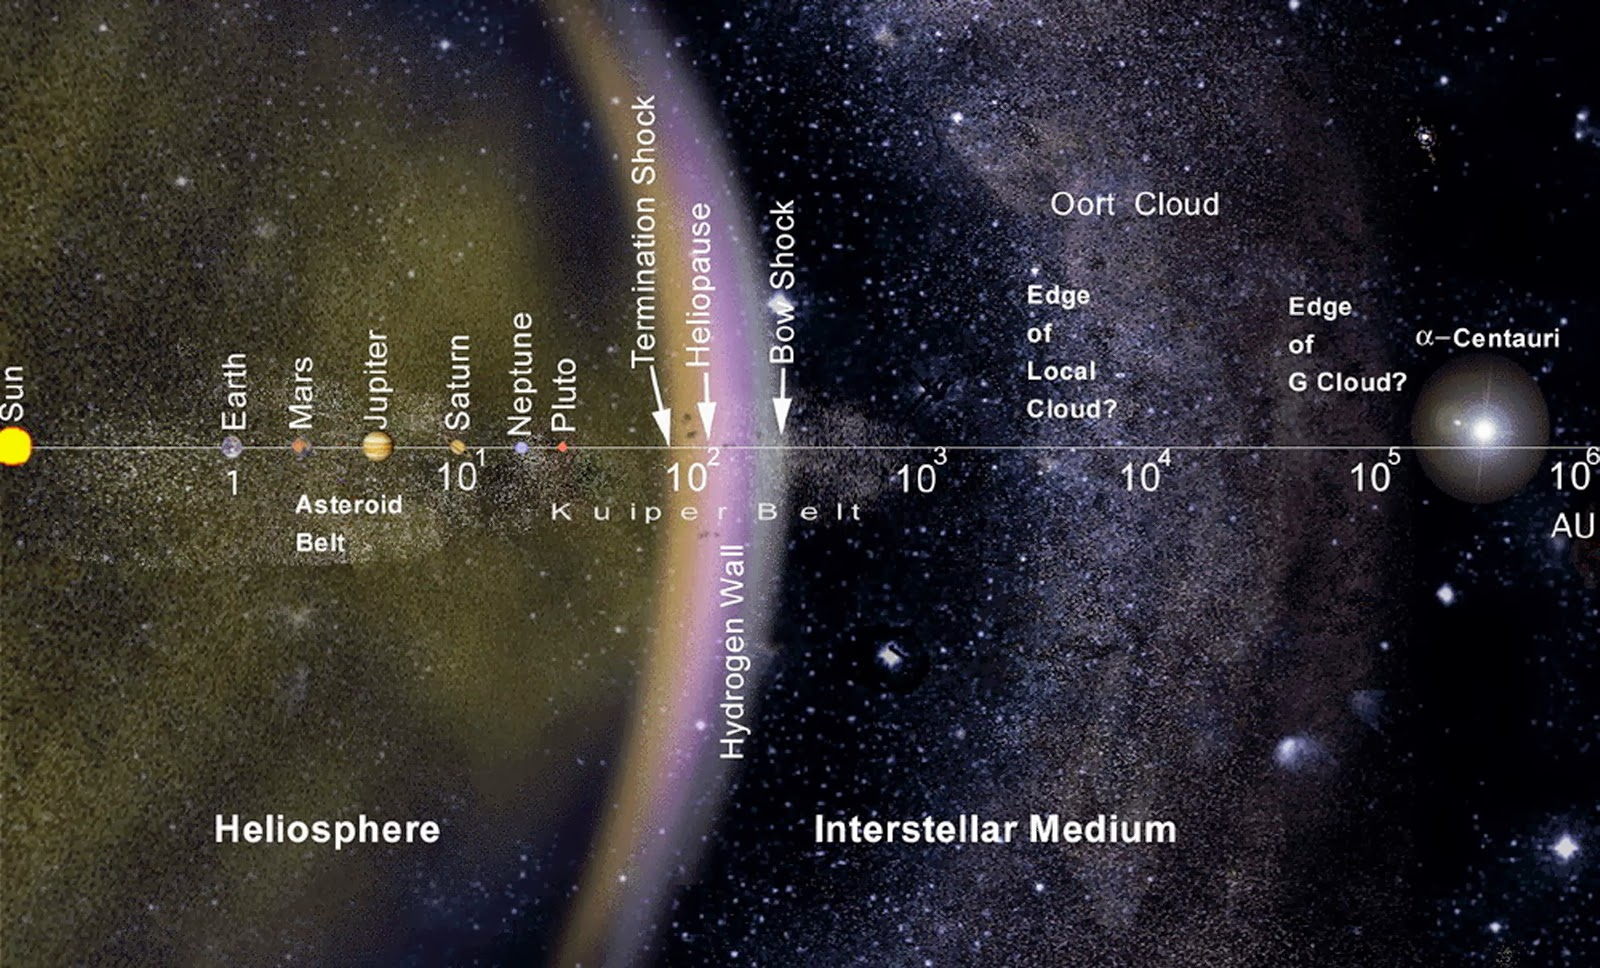 outer solar system including oort cloud -#main